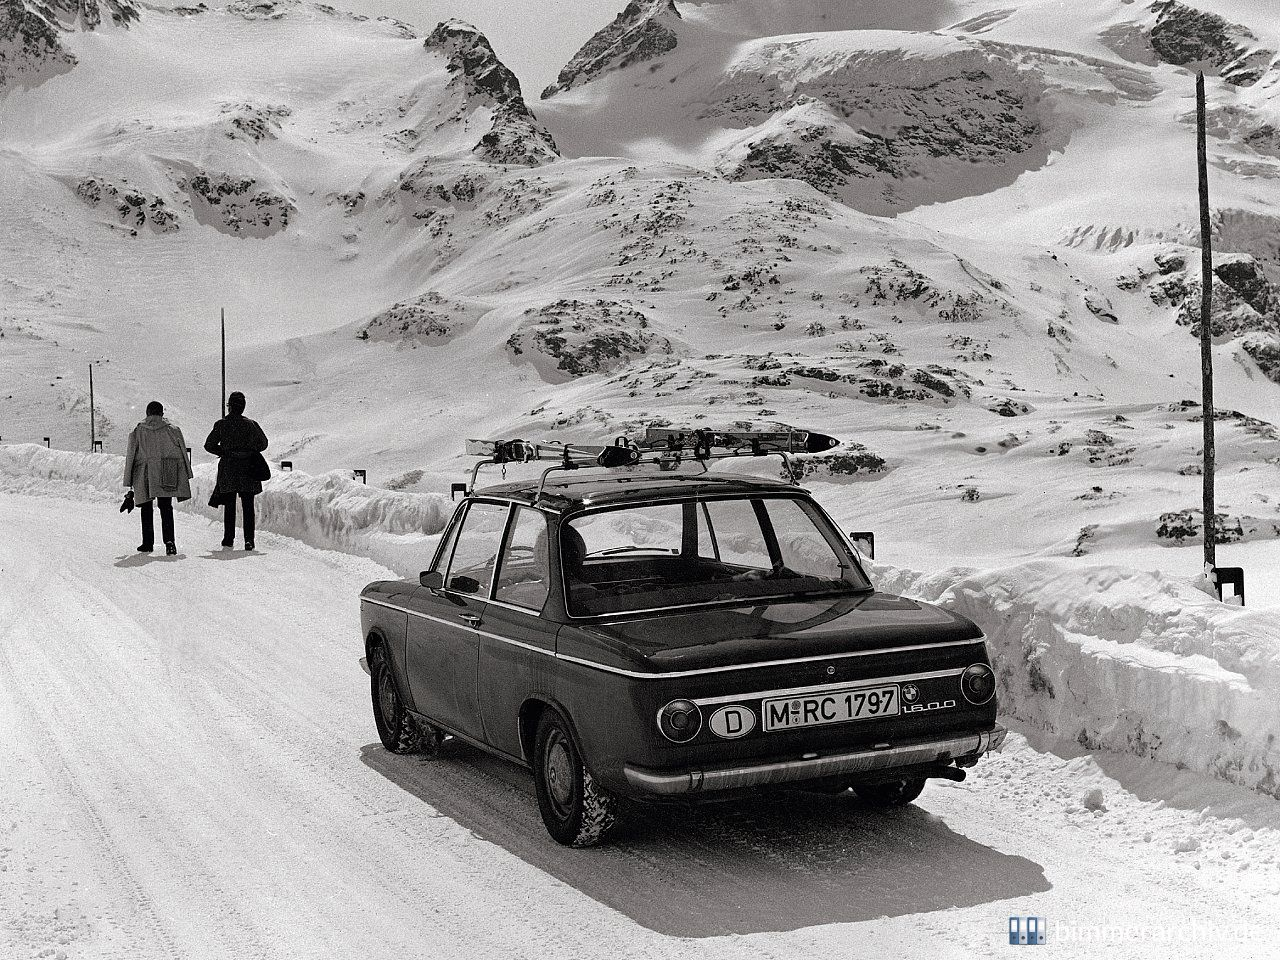 Model Archive for BMW models · BMW 1600 (1600-2), 1966 · bmwarchive.org